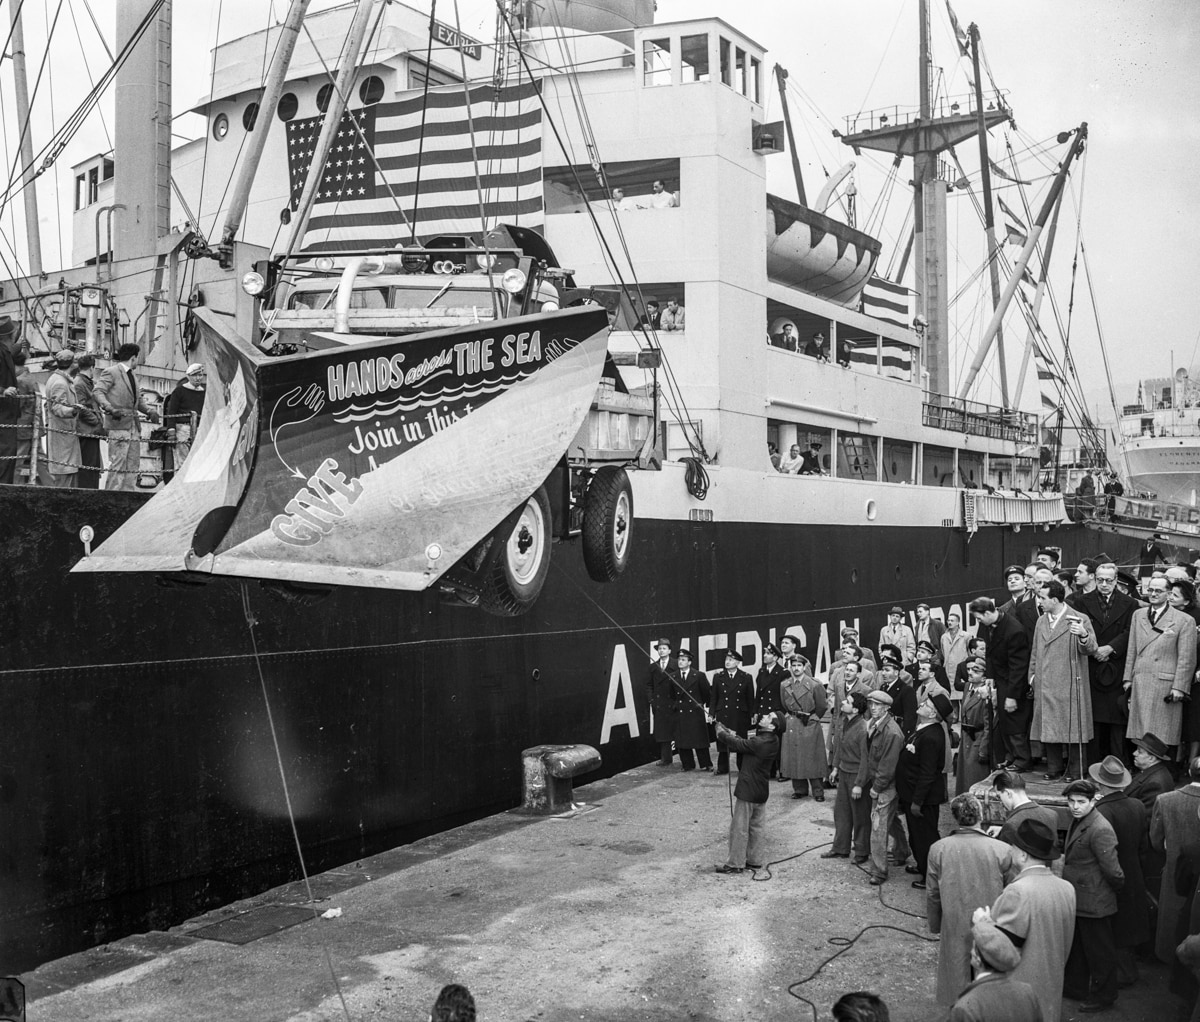 Vehicle being lowered from ship to dock crowded with people (© Bettmann/Getty Images)